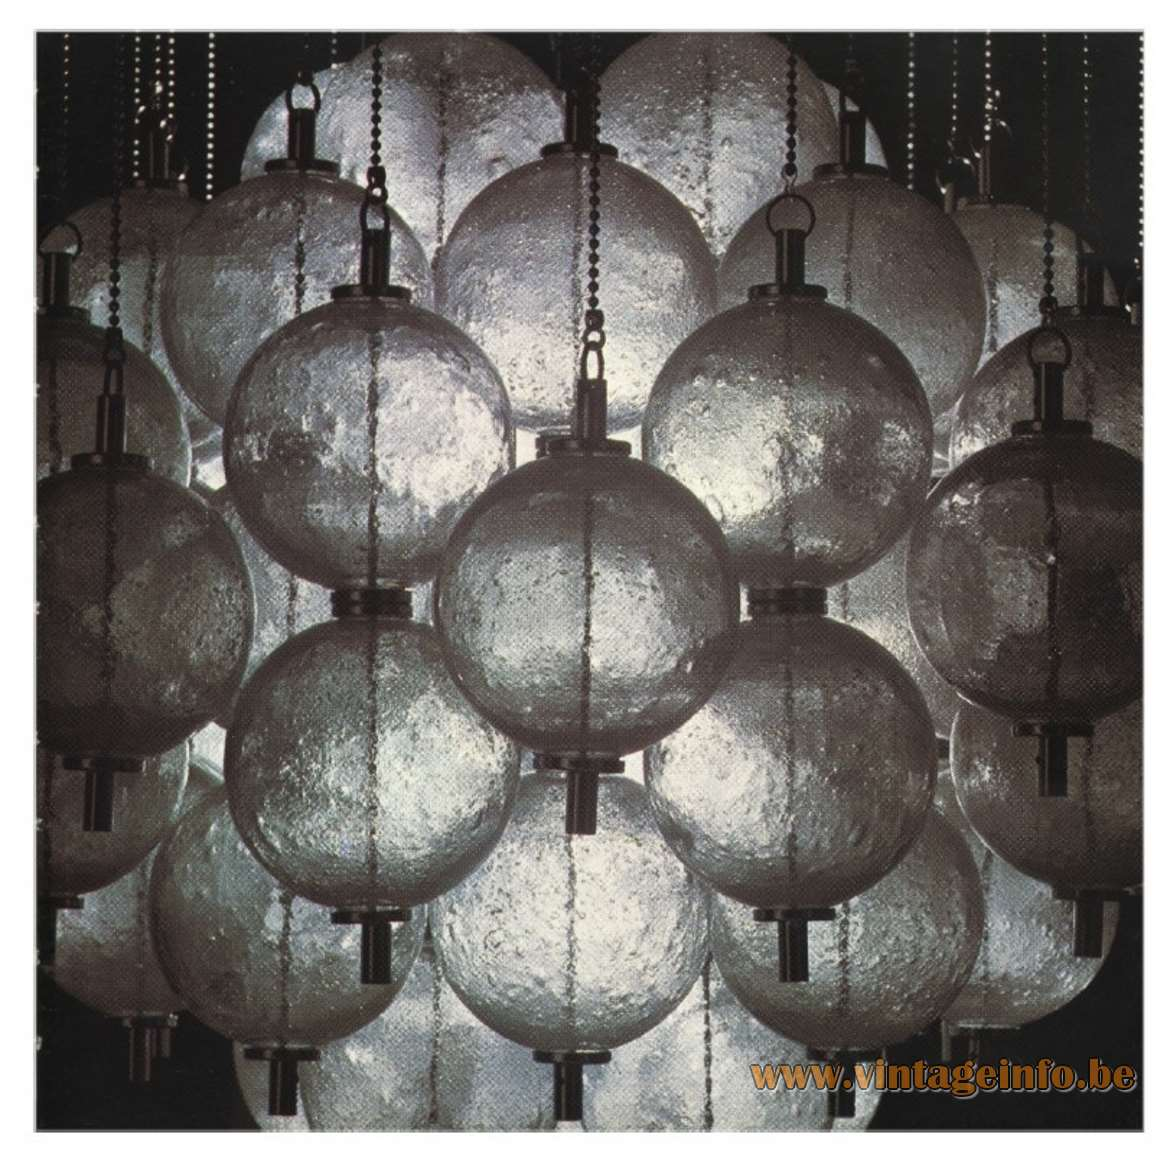 Raak Sterrenbeeld Ceiling Lamp flush mount round chrome plate chains glass balls/globes 1960s 1970s MCM - Catalogue picture